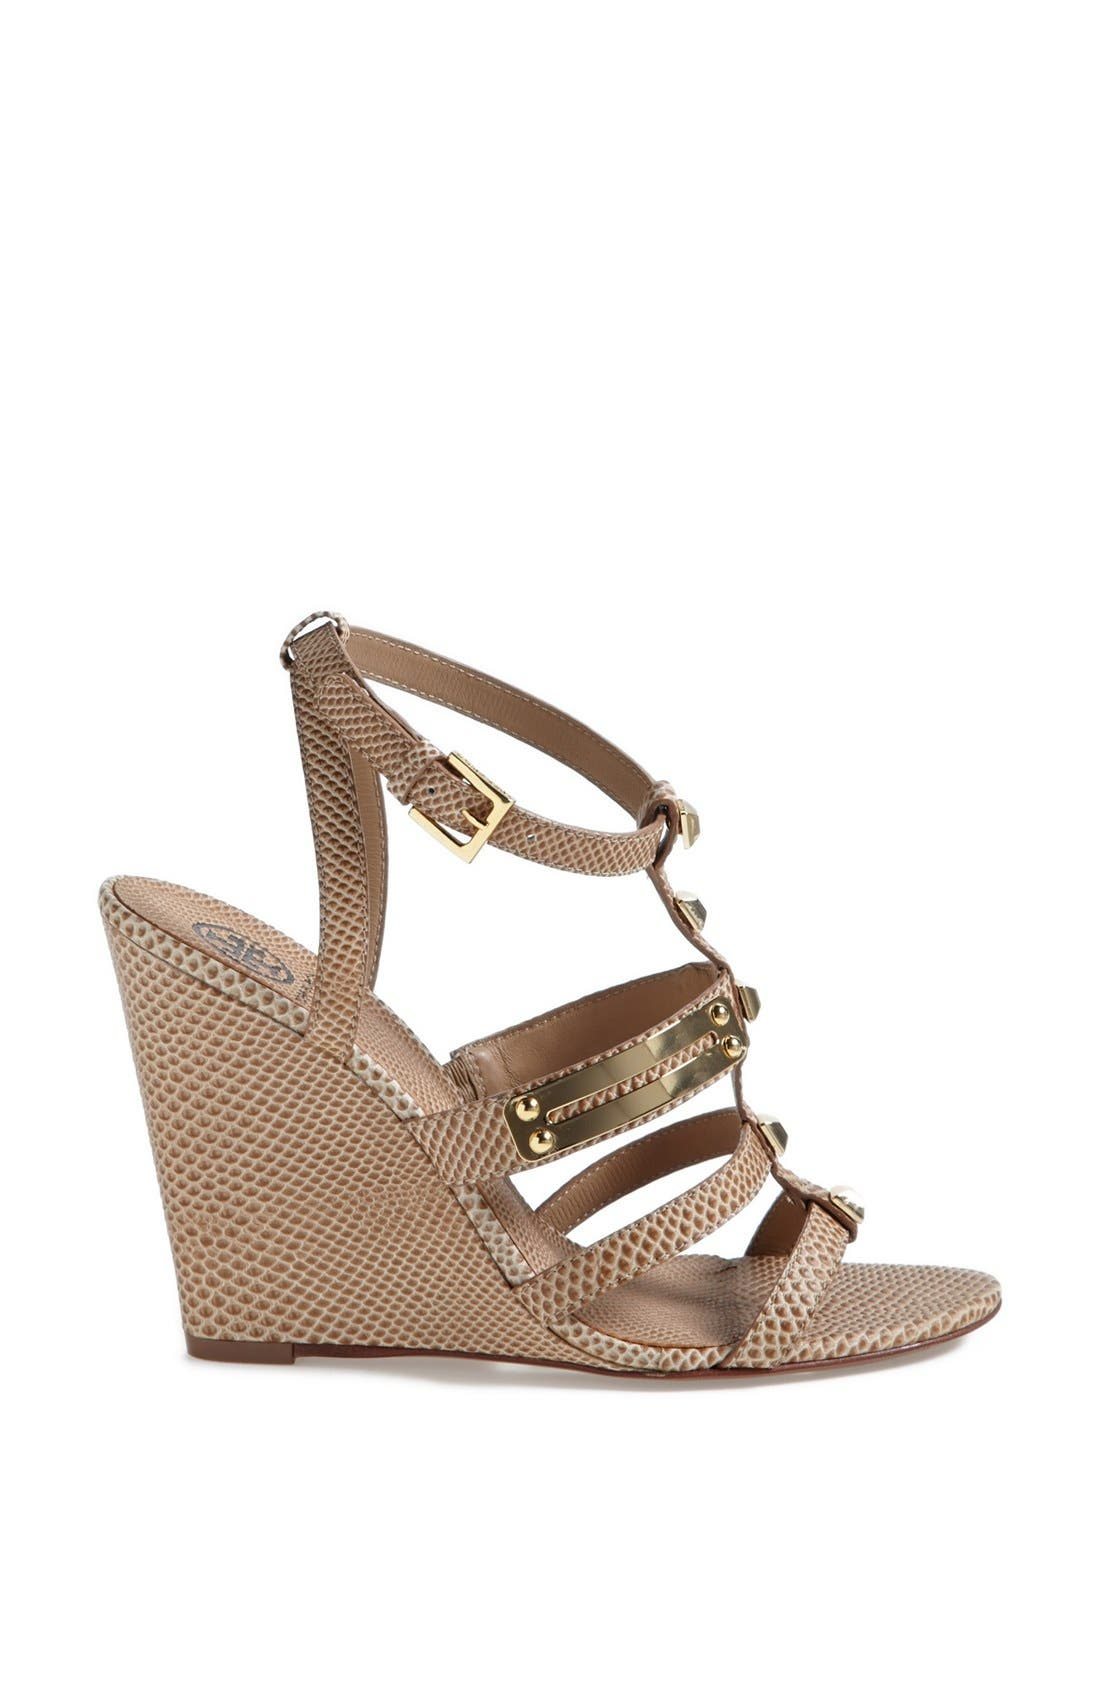 Alternate Image 3  - Tory Burch 'Iliana' Wedge Sandal (Online Only)